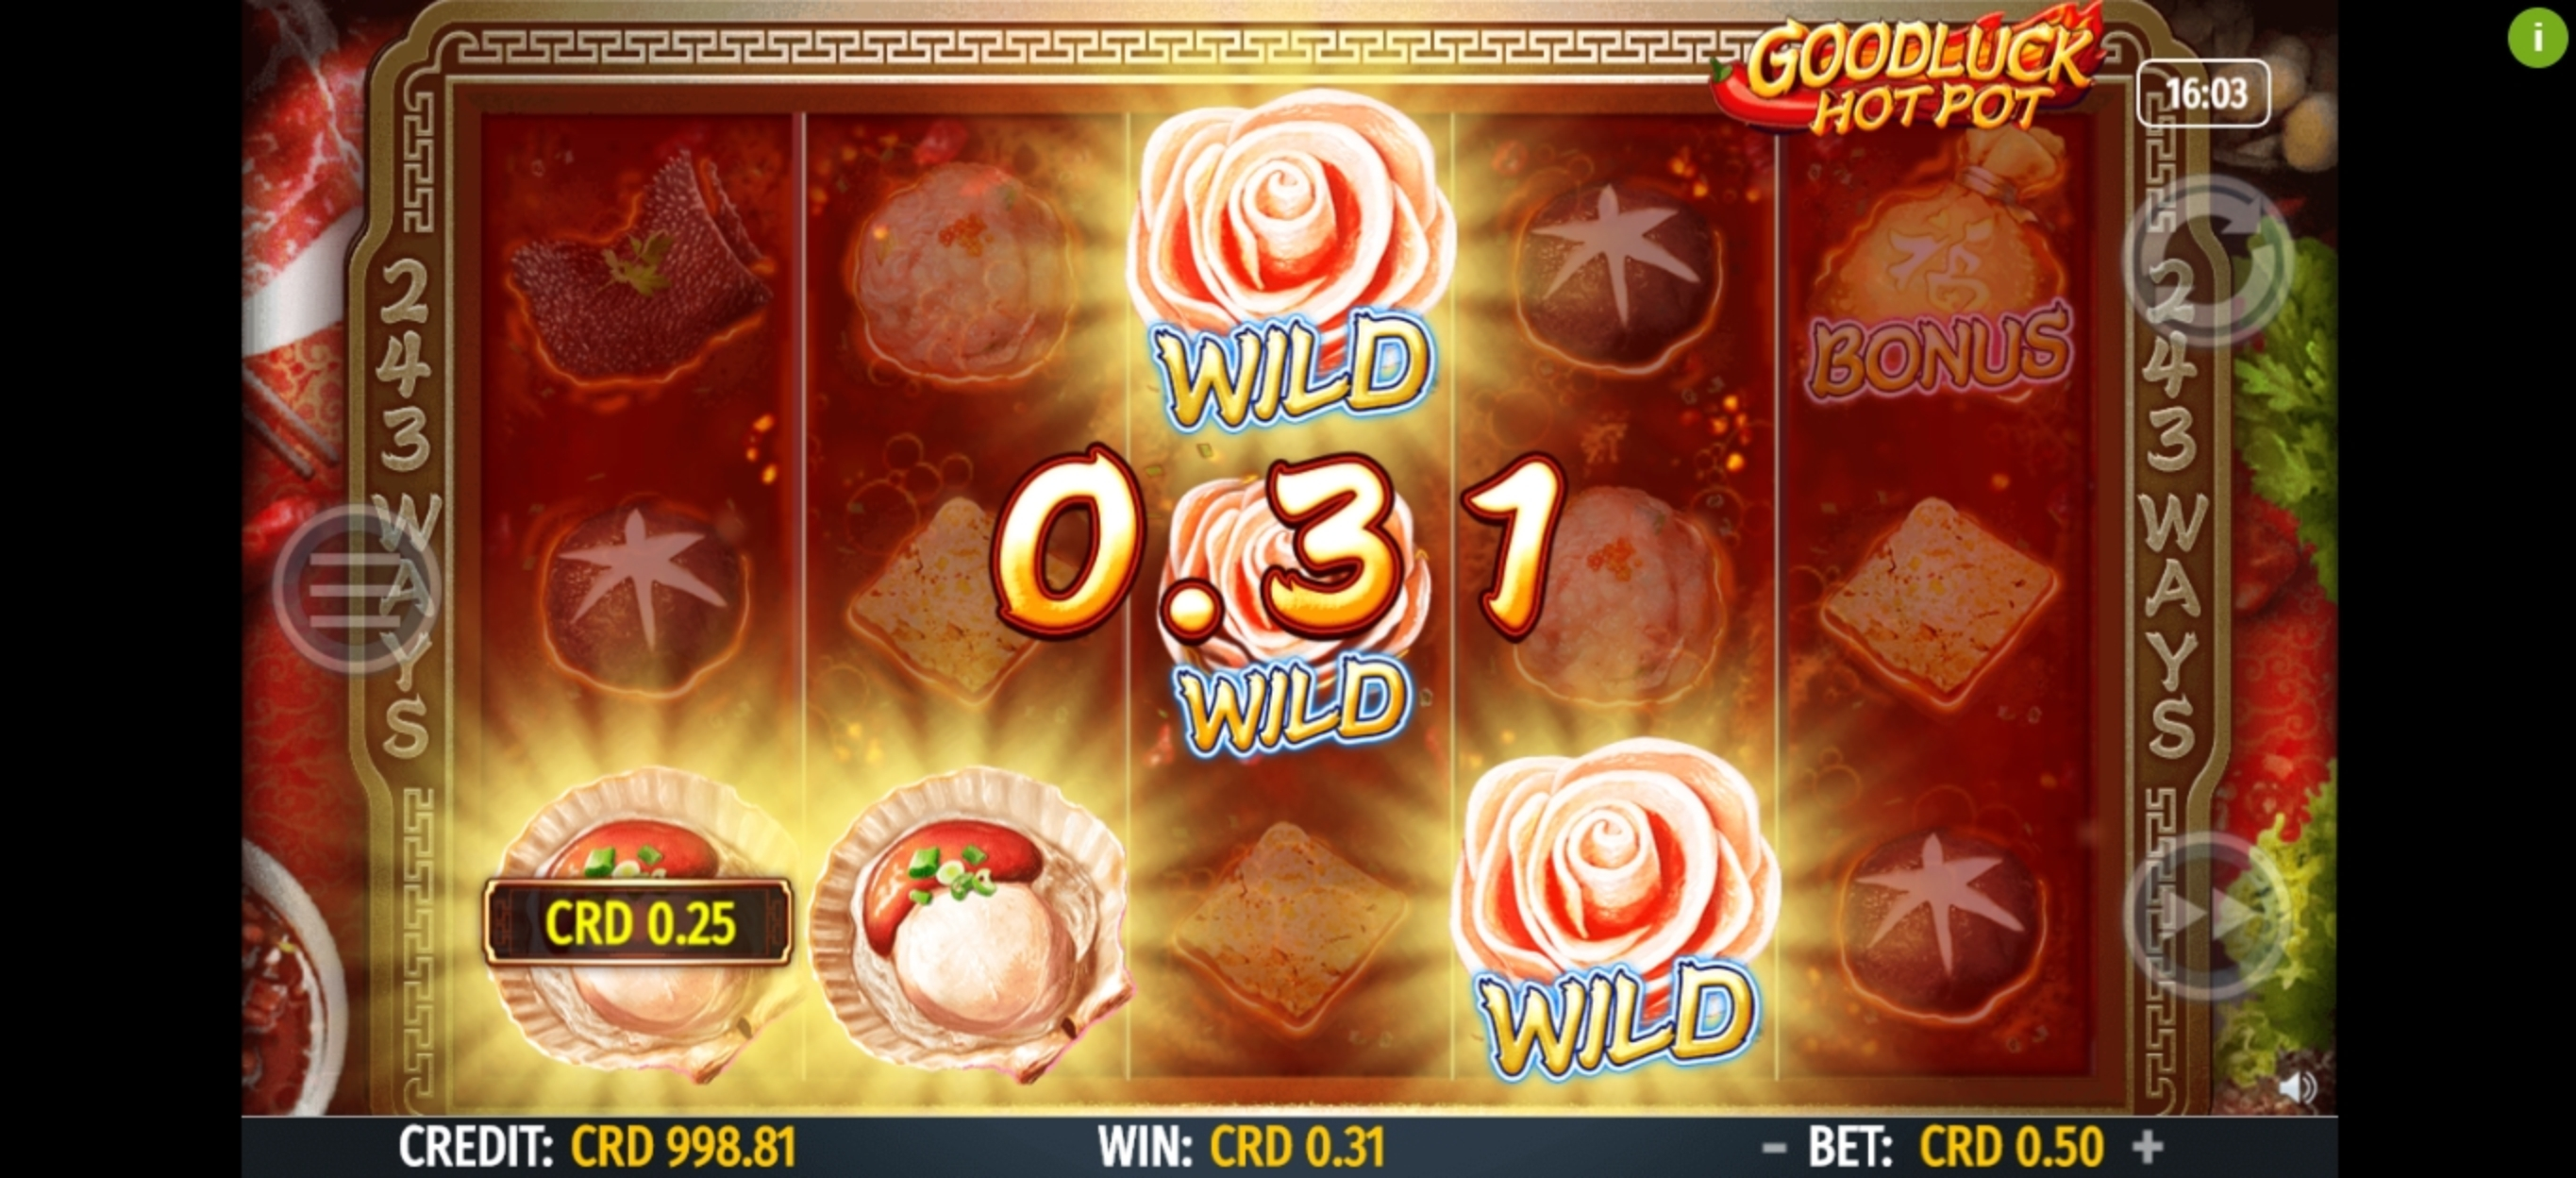 Win Money in Goodluck Hot Pot Free Slot Game by Octavian Gaming